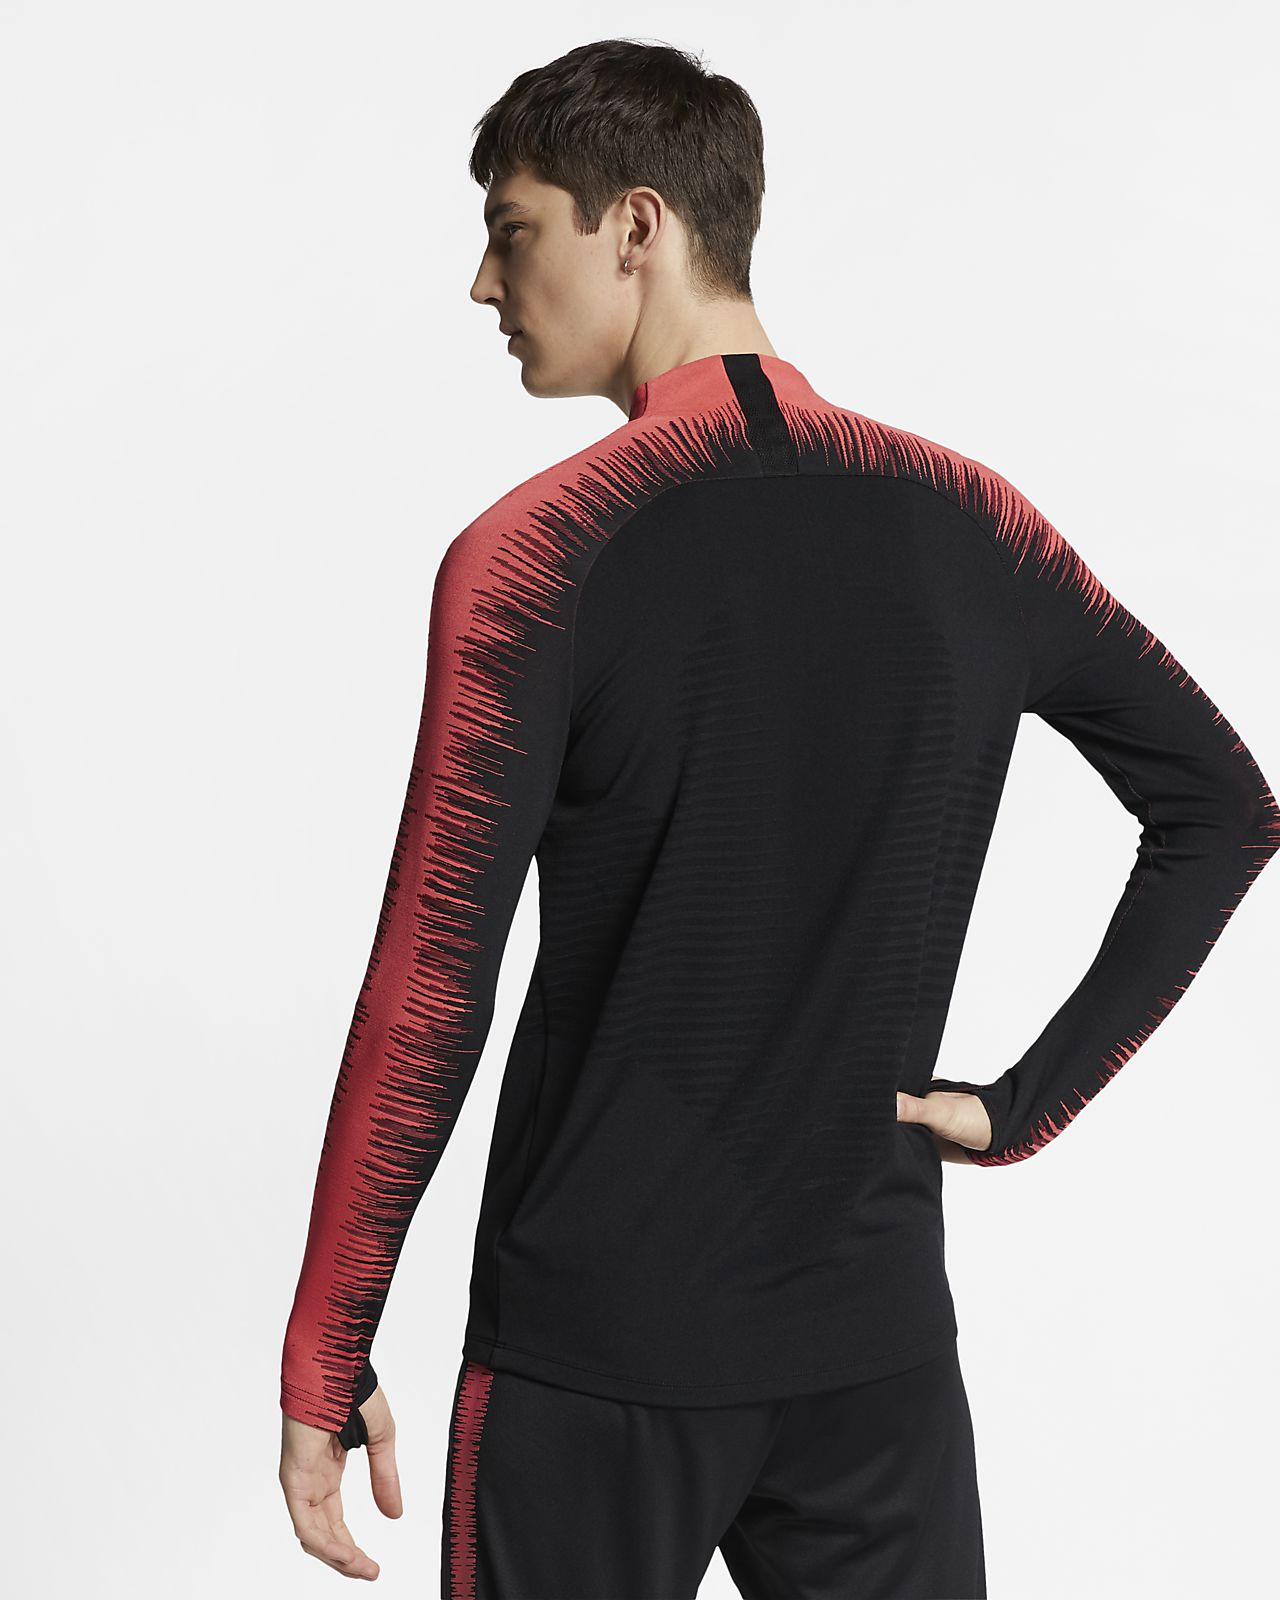 Nike VaporKnit Strike Men's Long-Sleeve Football Top